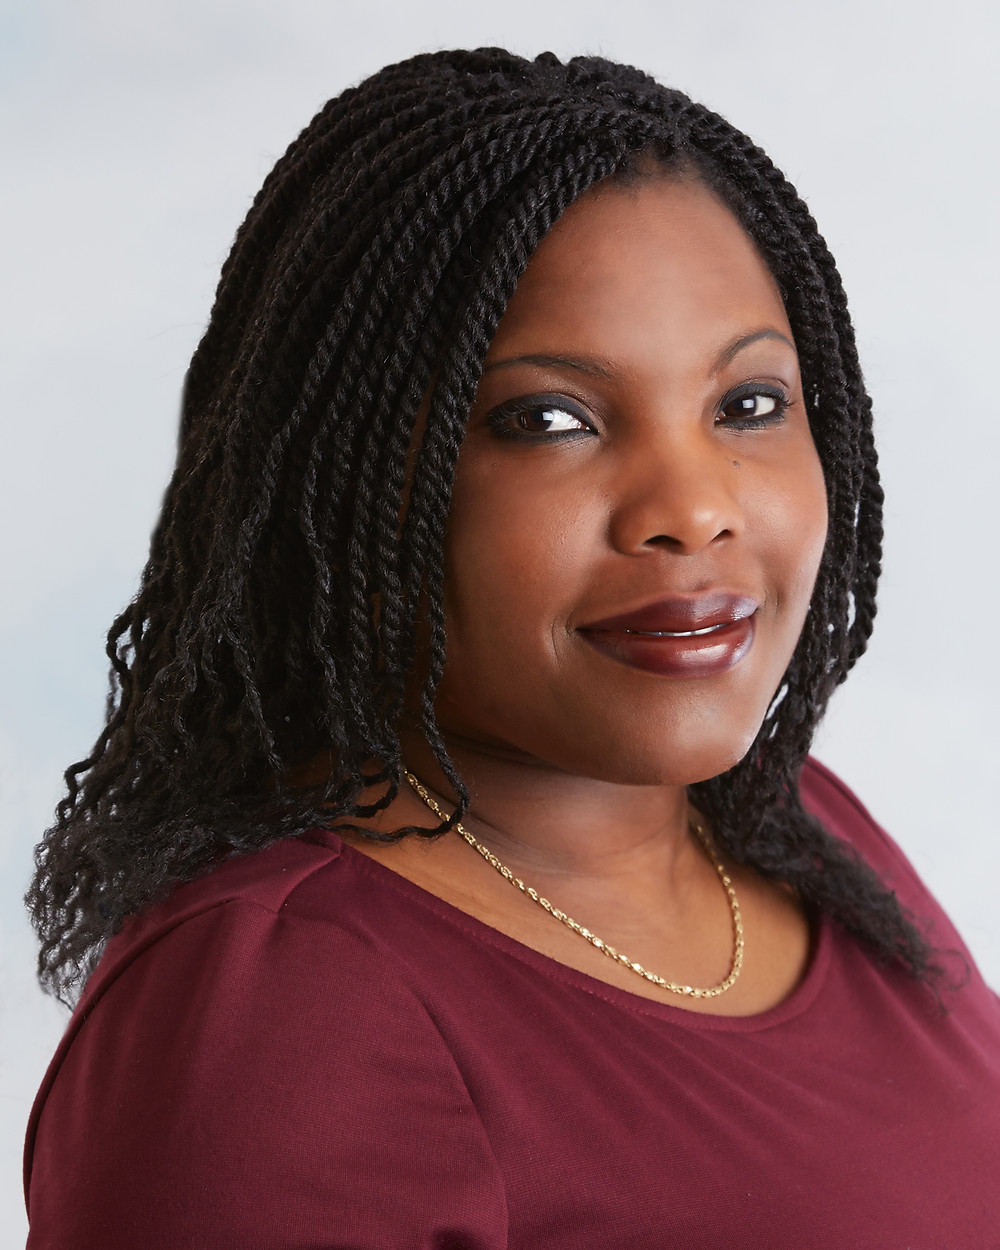 Kemi Sorinamde, Executive Coach, Engineering Coach, Tech, Women in Tech